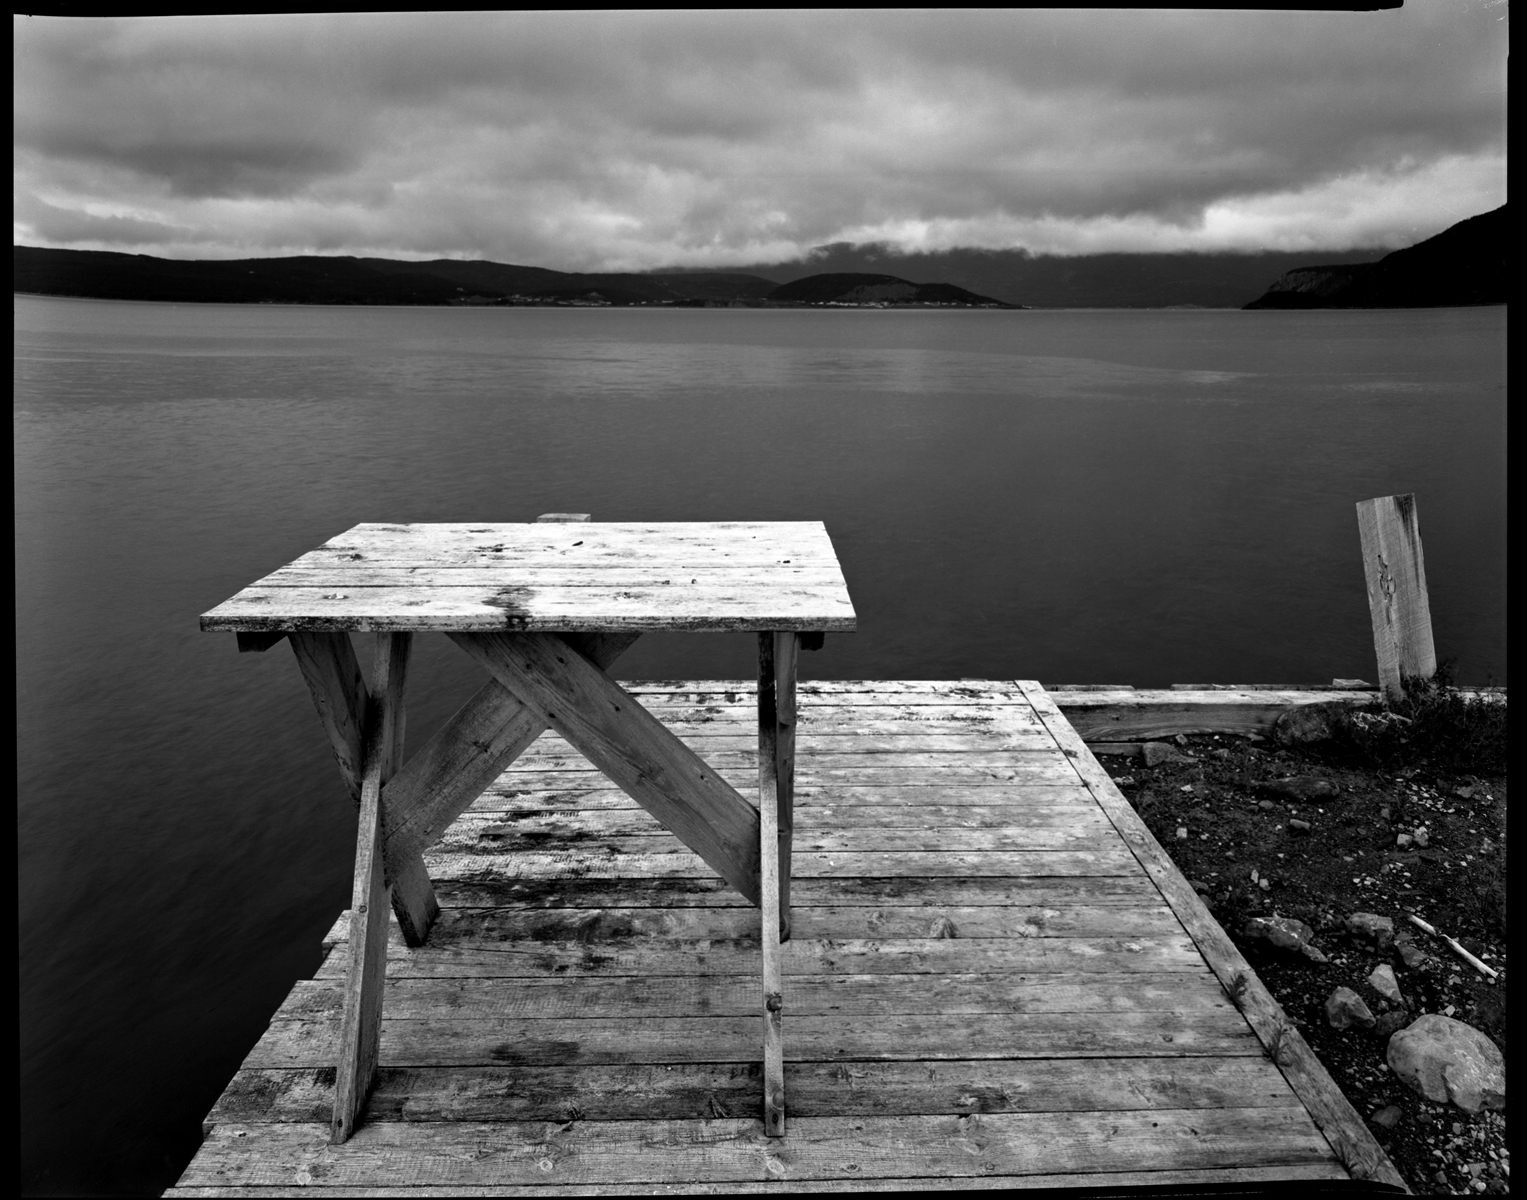 Curzon Village, Bonne Bay, Newfoundland, platinotype, 2005